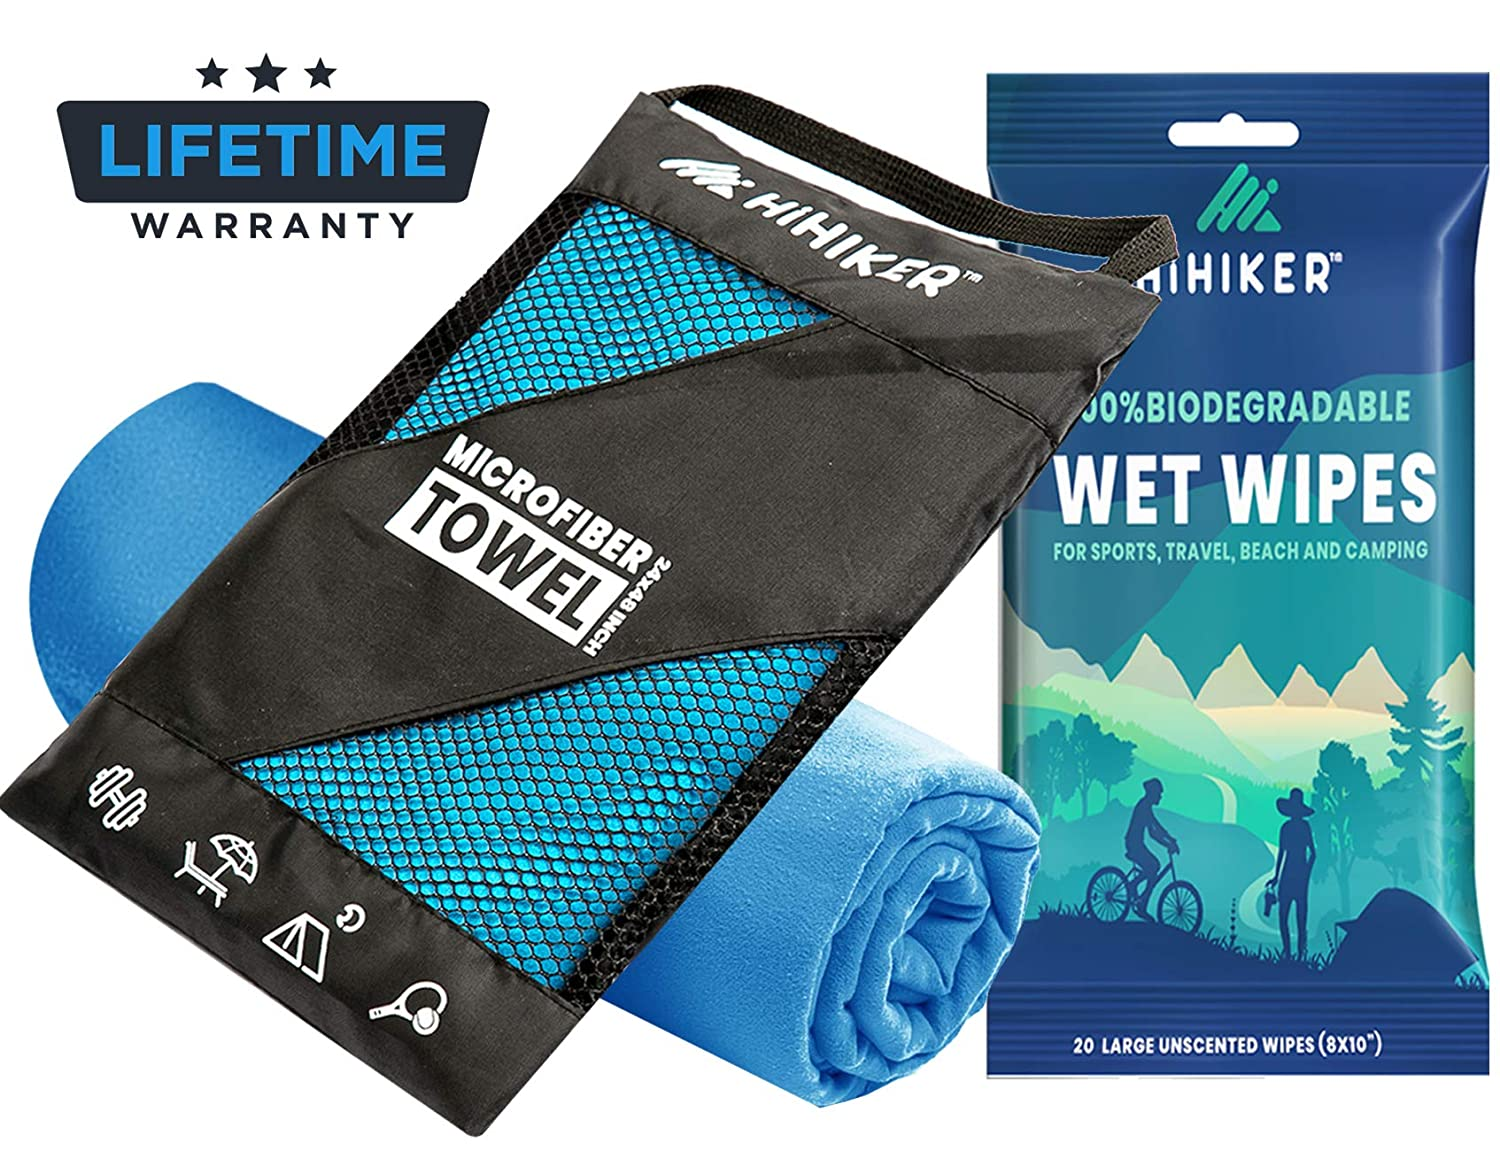 HiHiker Microfiber Camping Towel + Biodegradable Outdoor Wipes - Compact Towel Quick Dry & Lightweight for Gym, Travel, Swimming, Beach and Backpacking